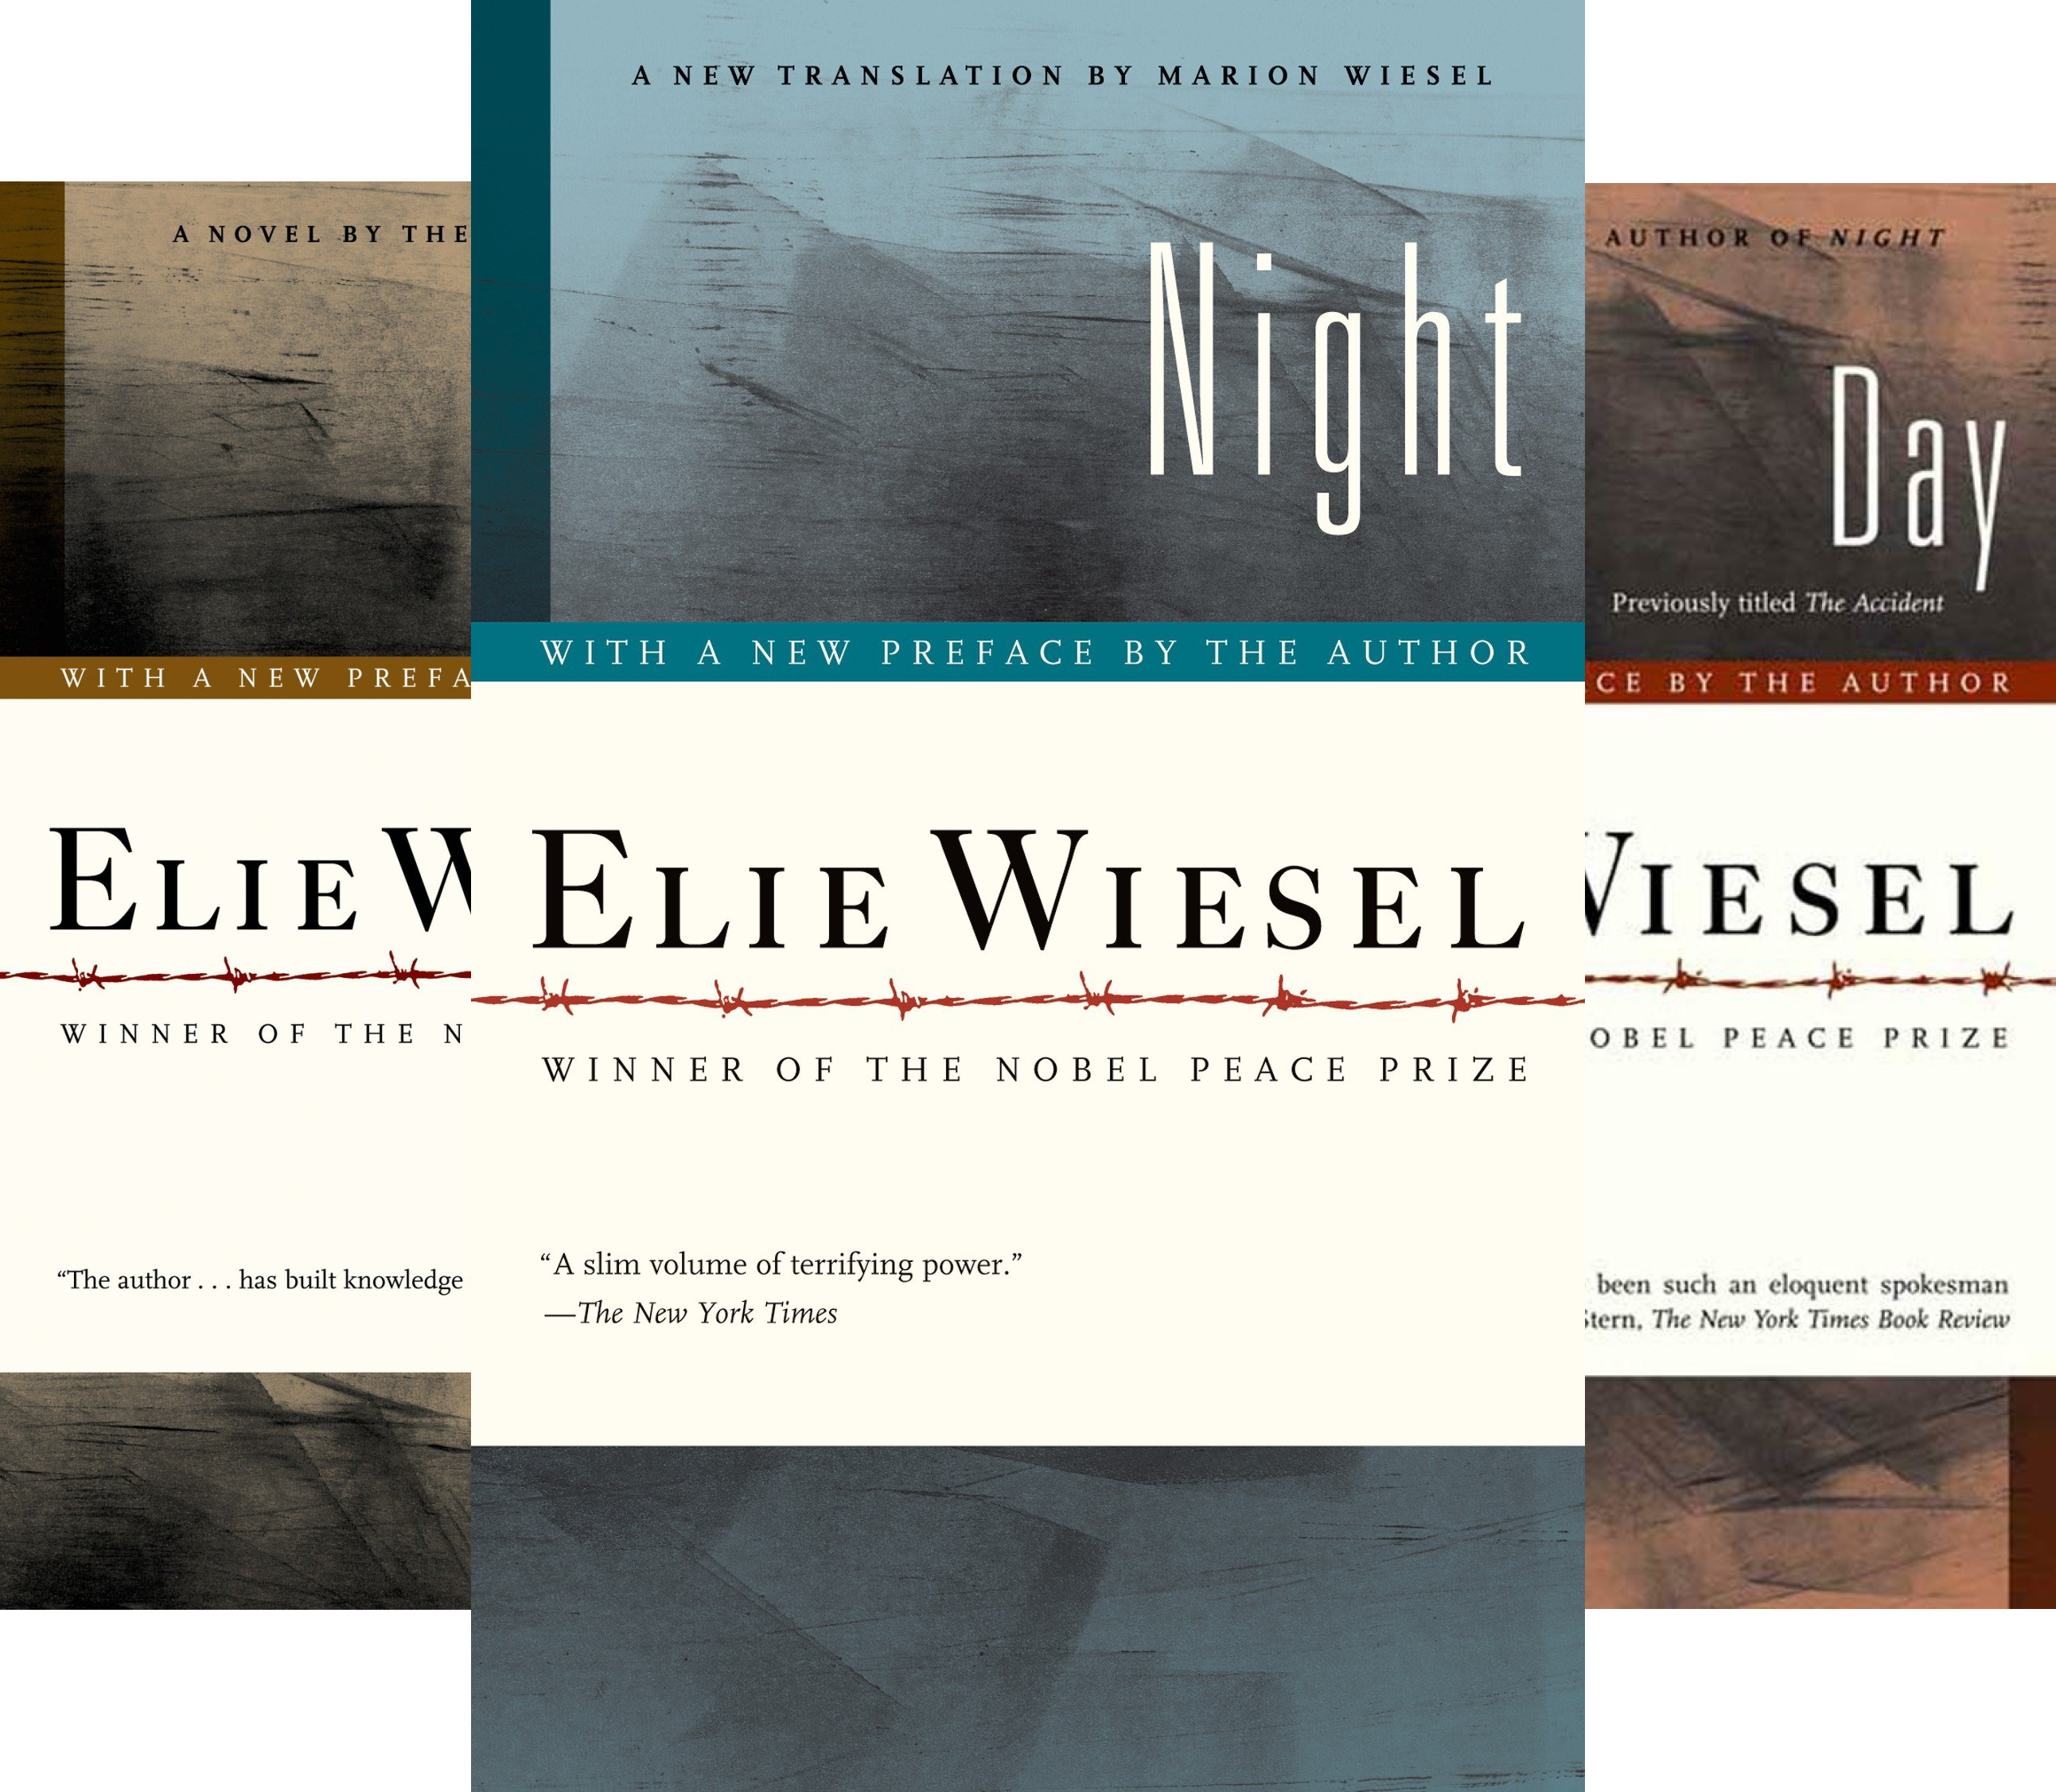 essay topics for night by elie wiesel related post of essay topics for night by elie wiesel